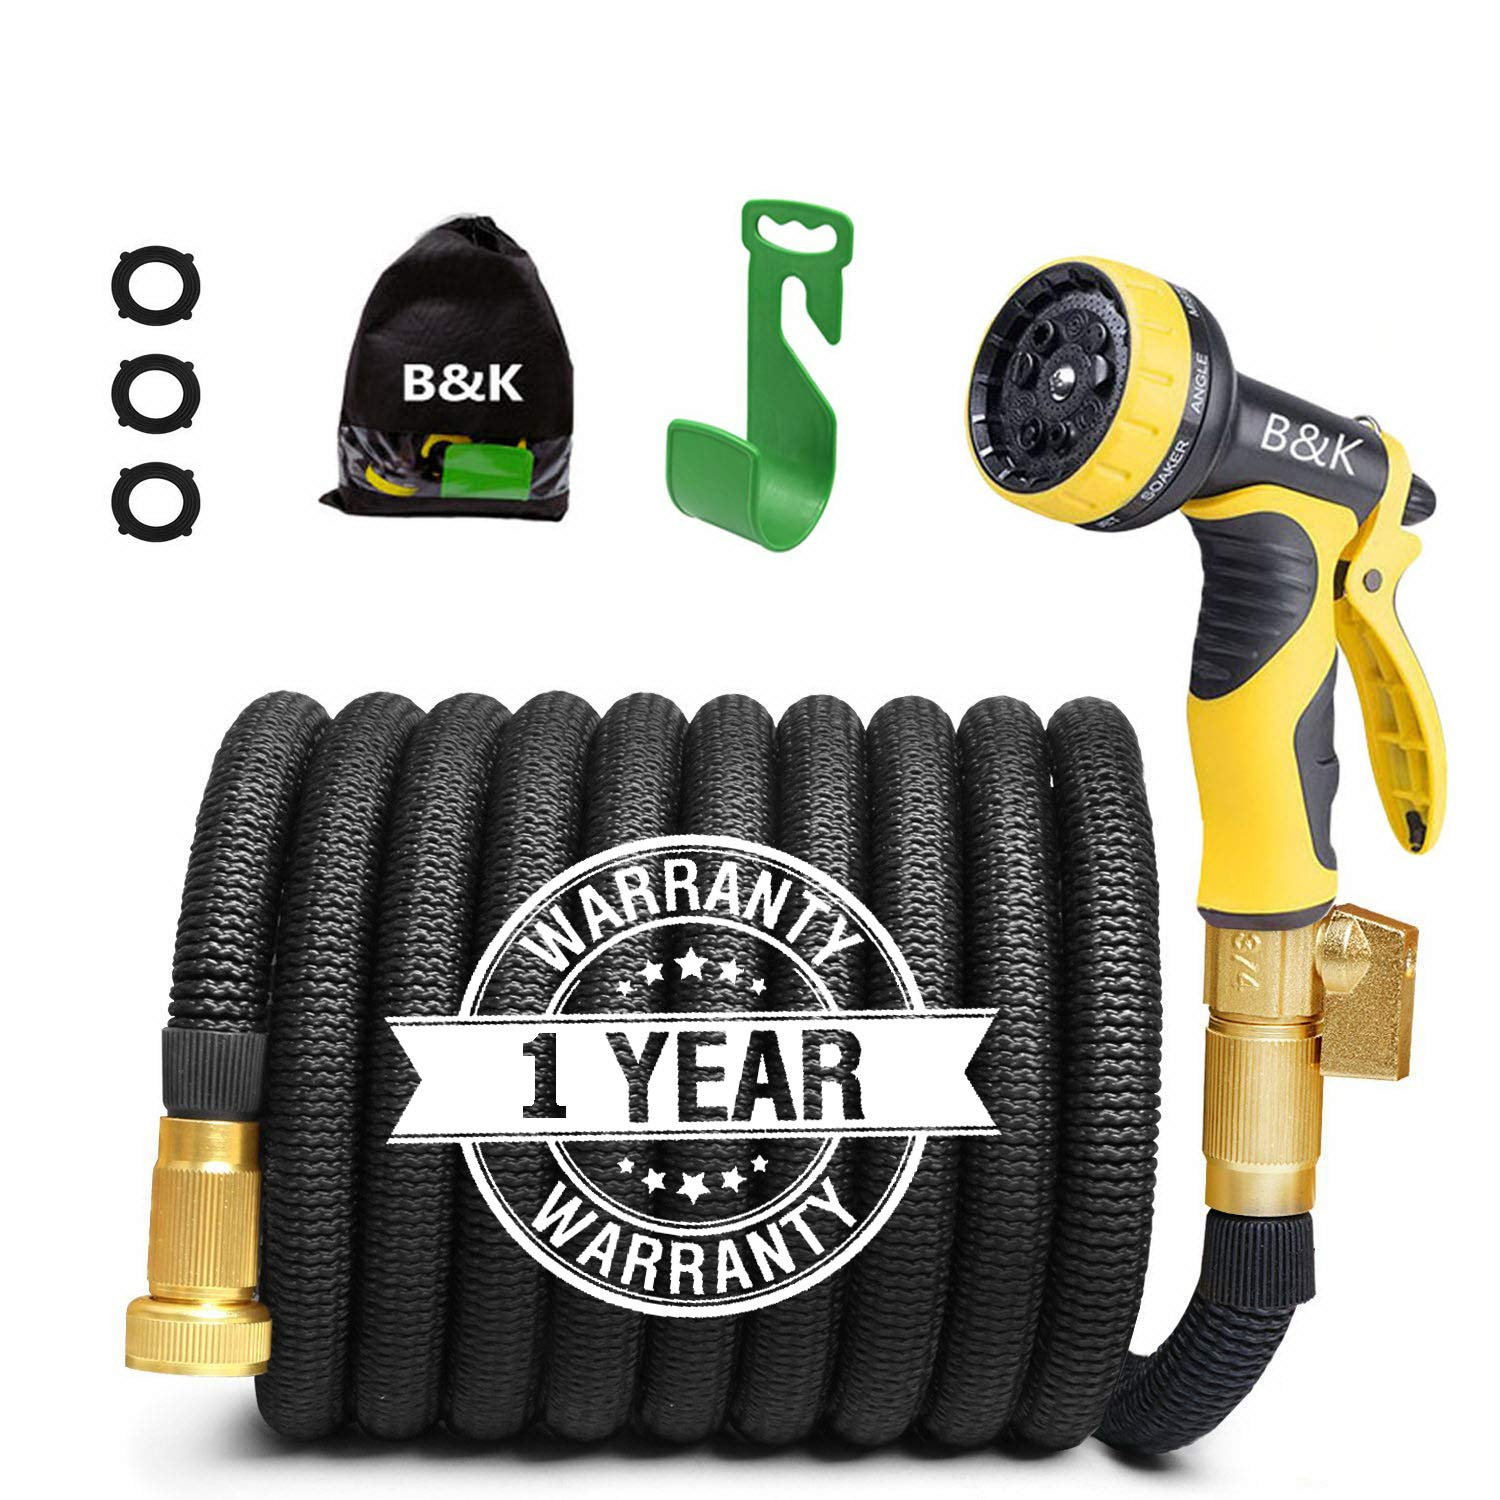 Garden Hose, Lightweight Expandable Water Hose Set, Outdoor Expanding Flexible Double Latex Core Yard Hose with 3/4 Solid Brass Fitting, 9 Functions Spray Nozzle and Hanger (50ft)